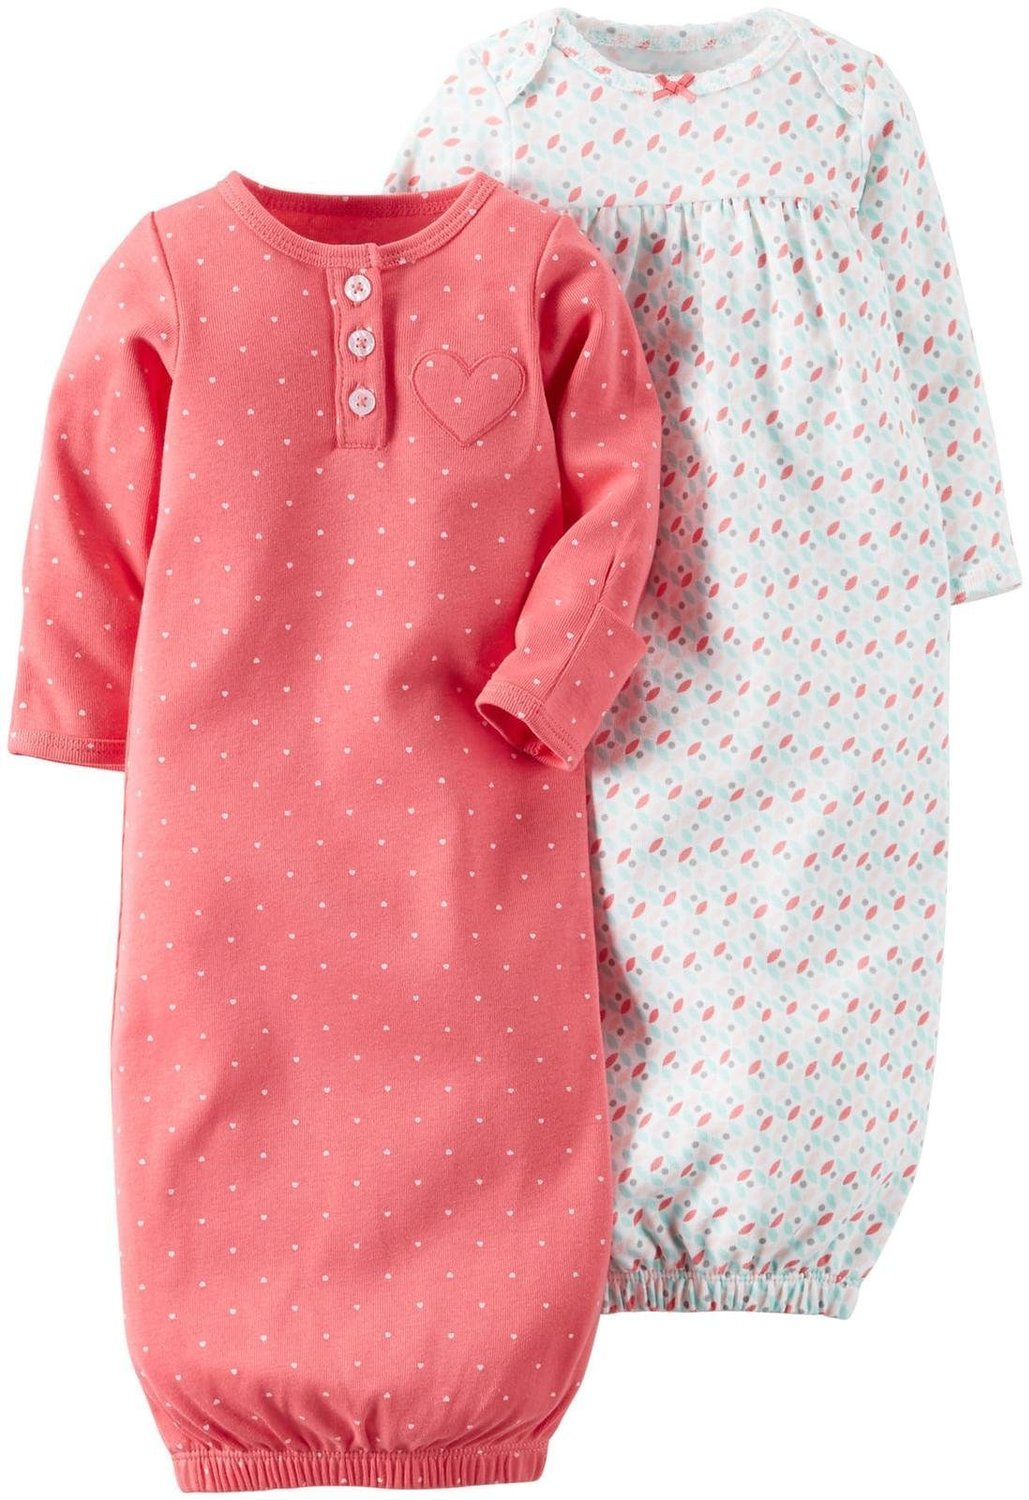 Cheap Baby Gowns, find Baby Gowns deals on line at Alibaba.com